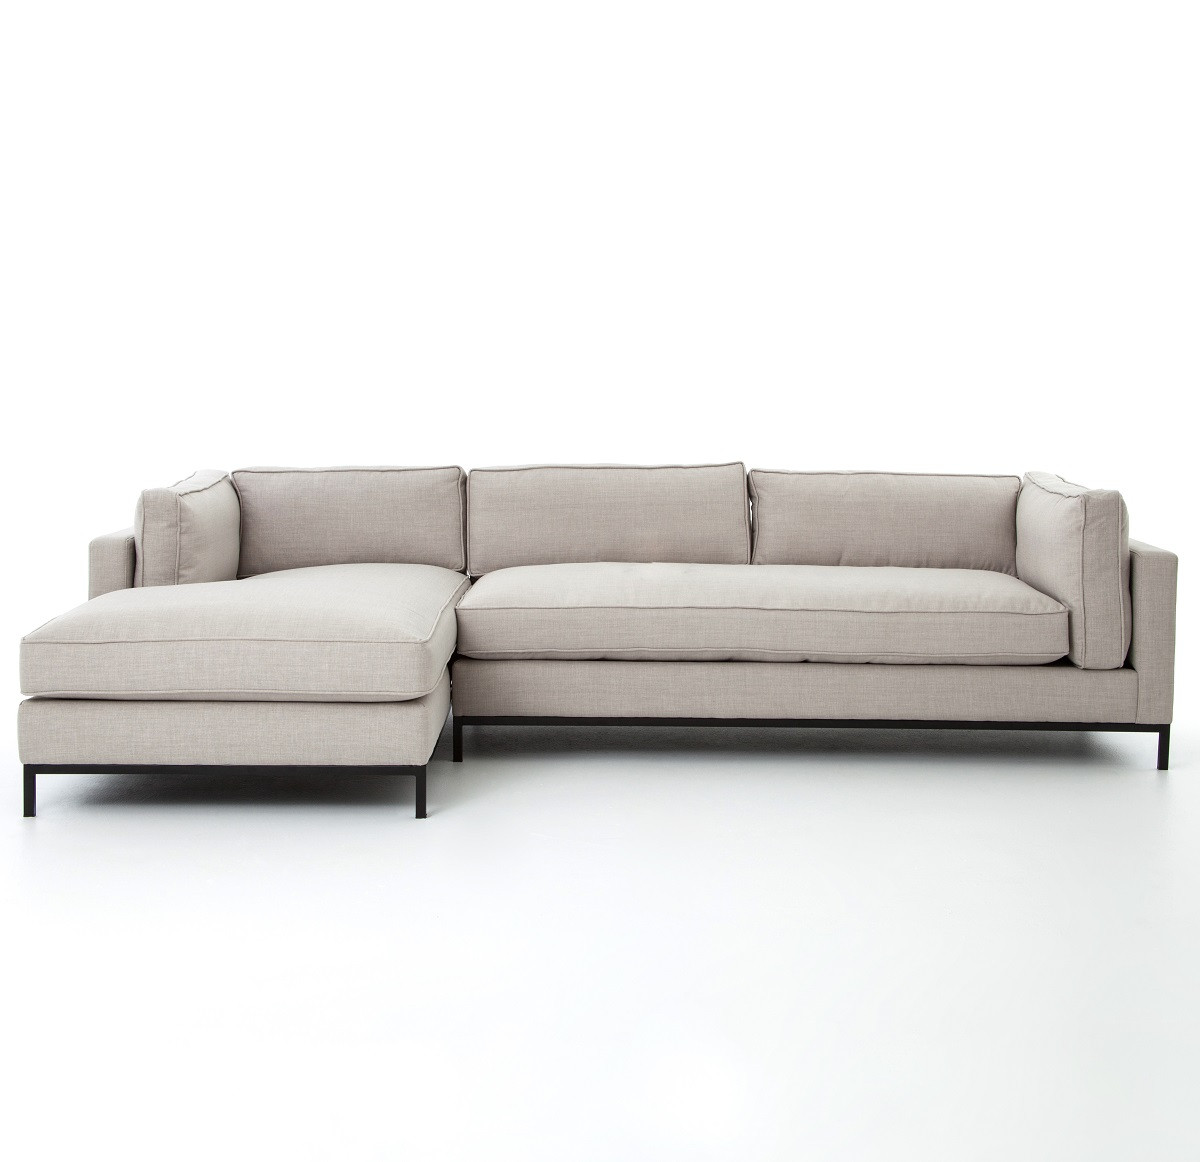 Contemporary Sectional: Grammercy Linen Upholstered Modern 2 Piece Sectional Sofa